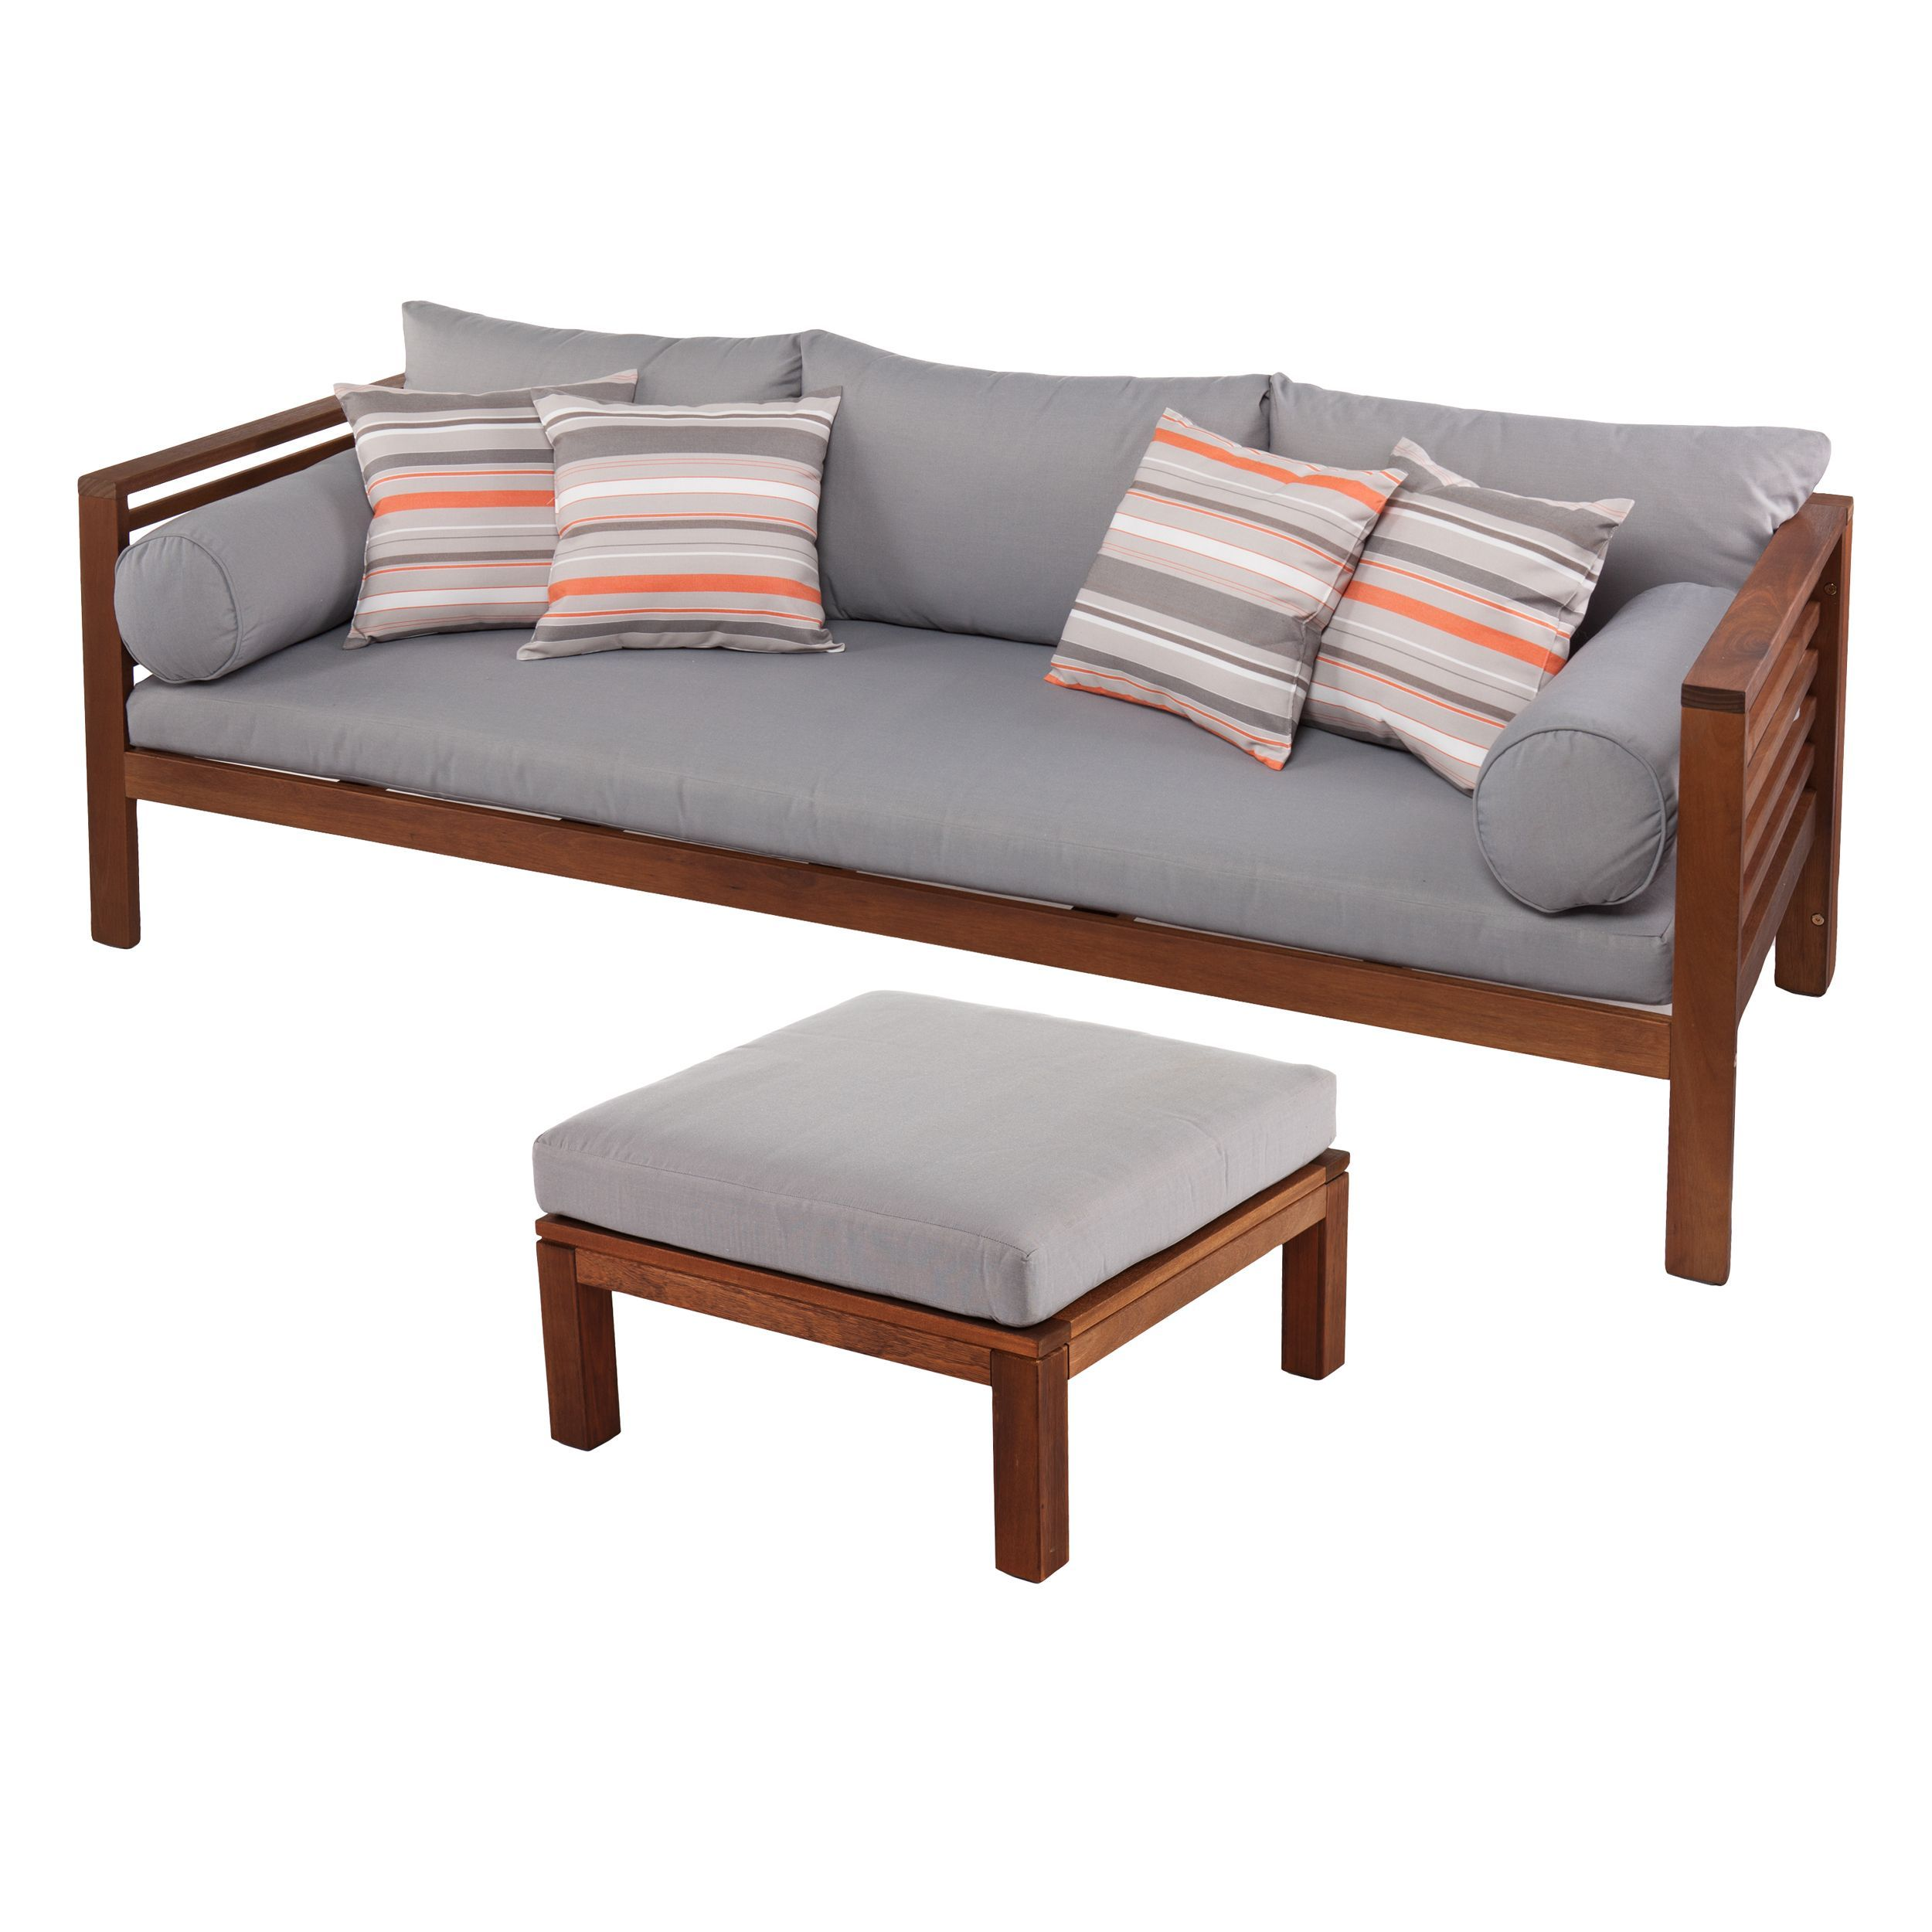 Best Online Shopping Bedding Furniture Electronics Jewelry Clothing More Outdoor Sofa 400 x 300